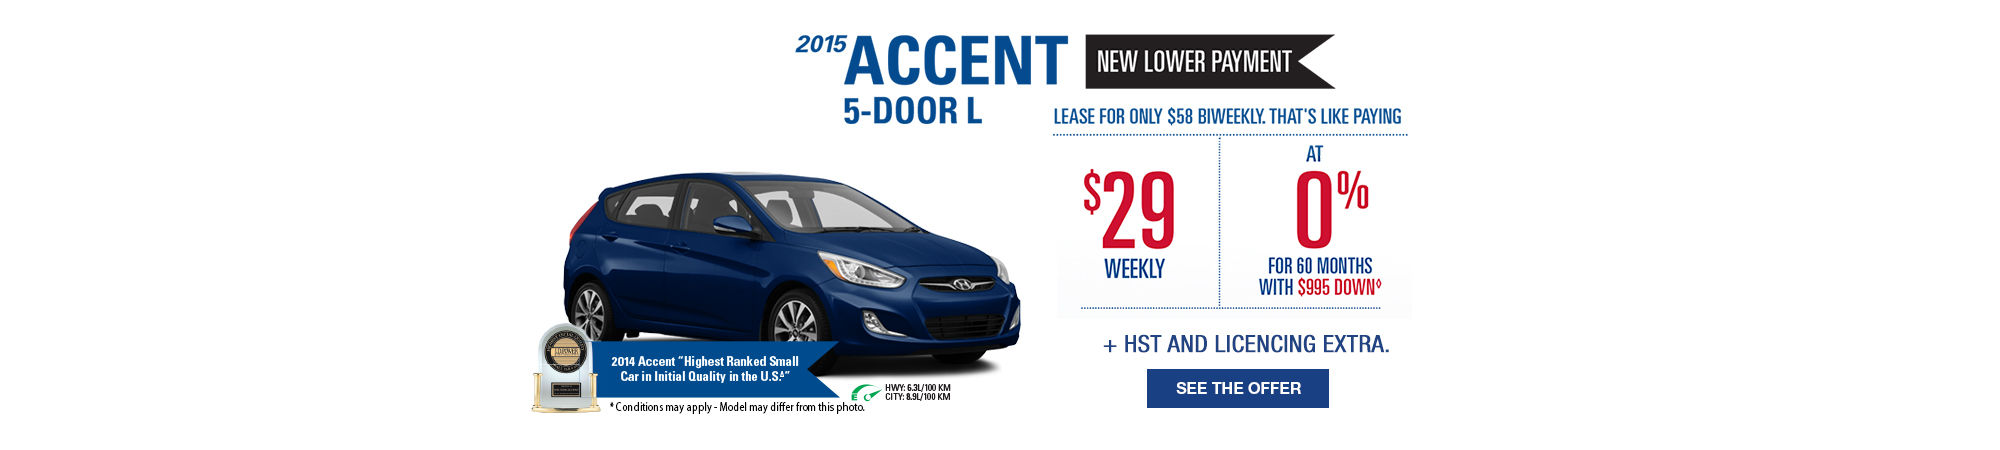 Dealer Invoice Pricing - 2015 Accent